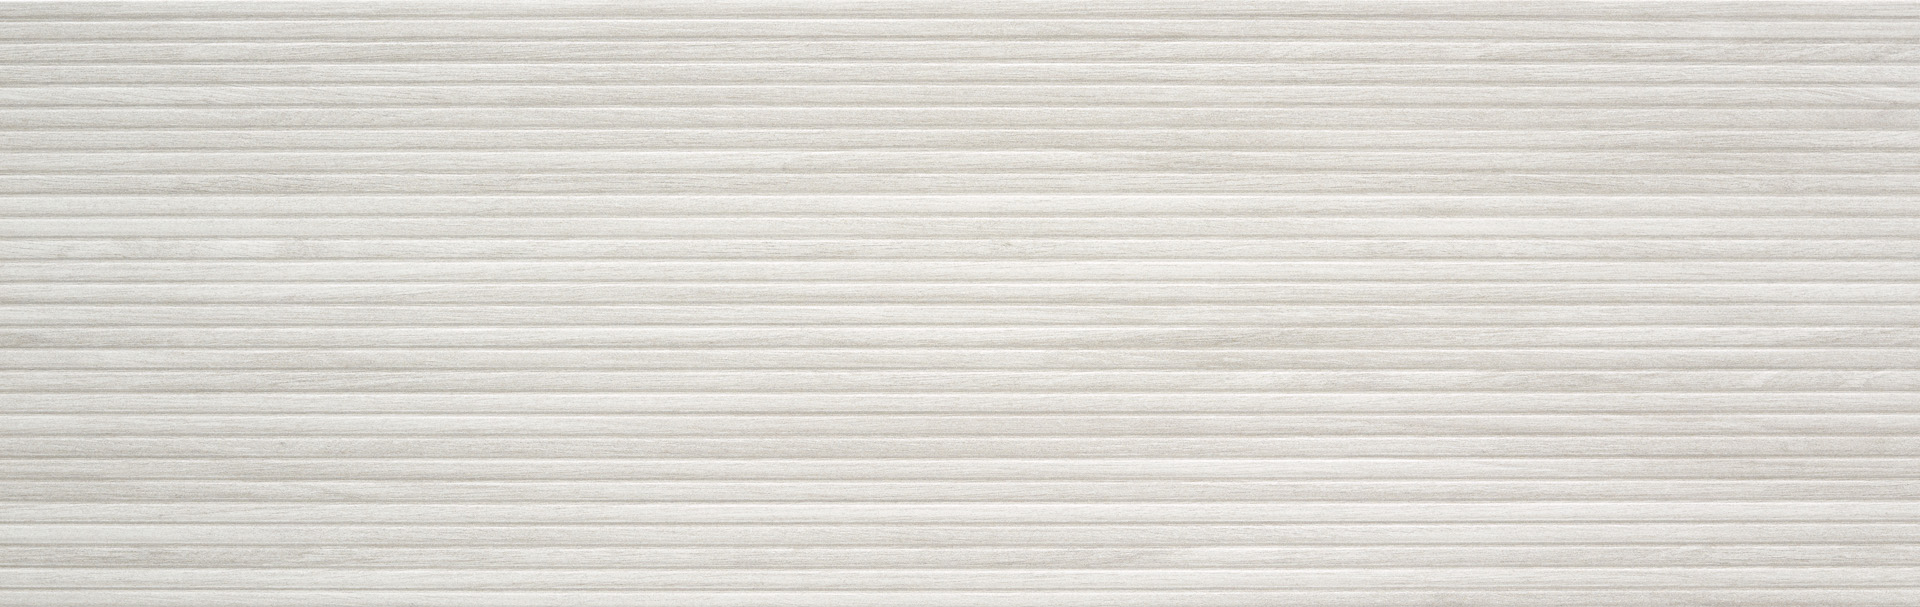 12.64  X 40 Linnear White textured Rectified Porcelain Tile